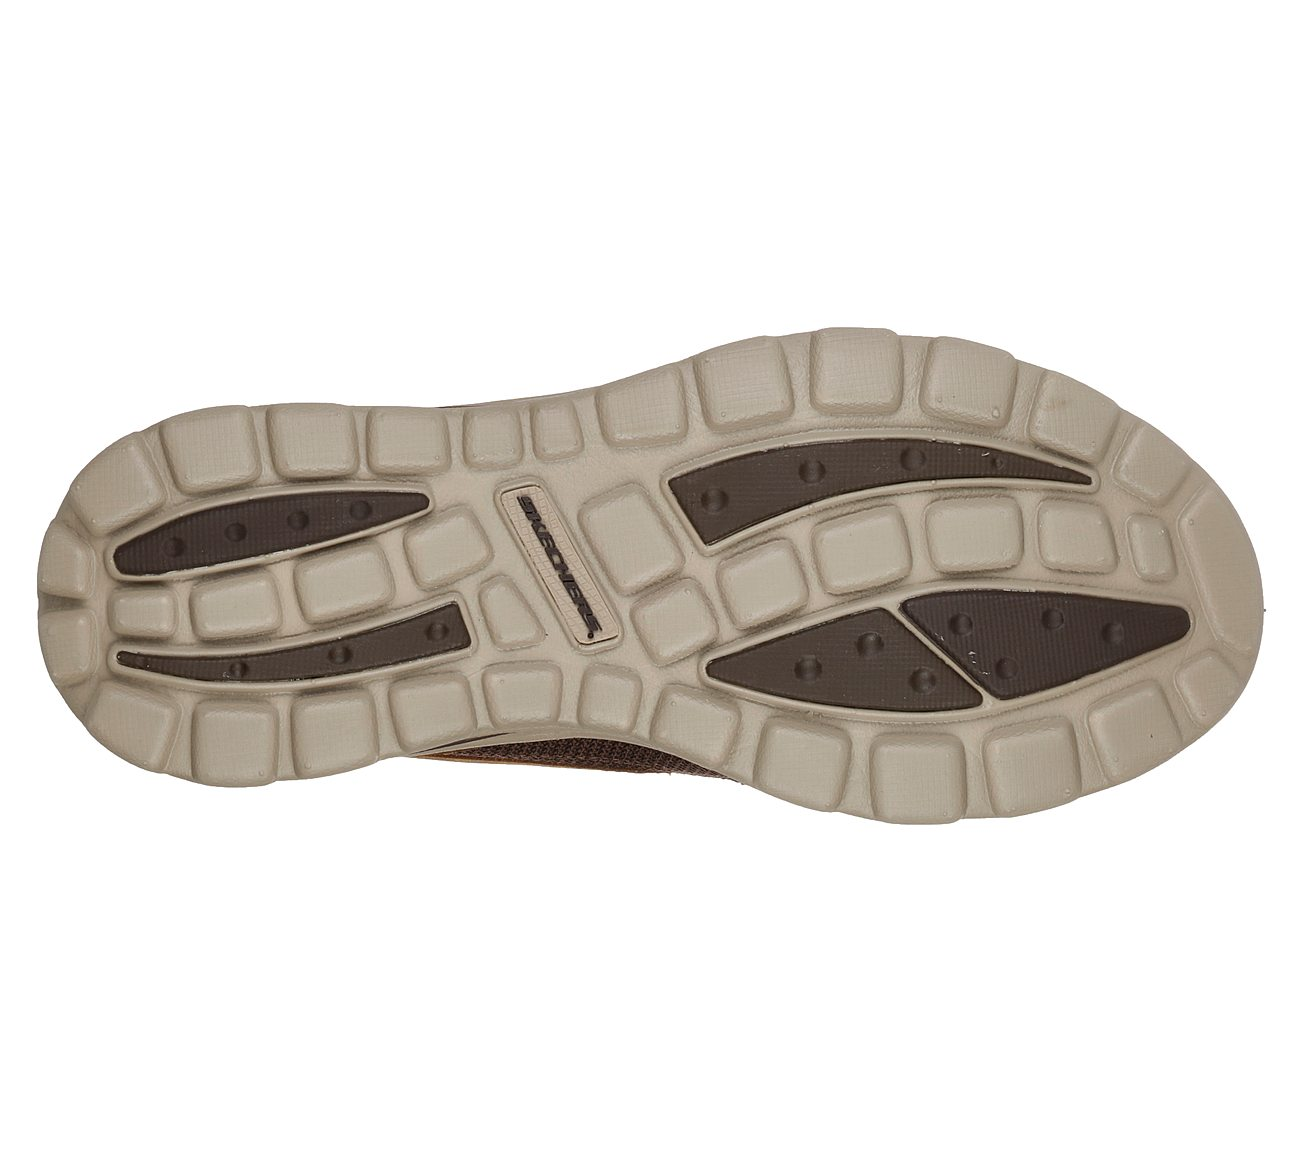 f7ae65884539 Buy SKECHERS Relaxed Fit  Superior - Milford Modern Comfort Shoes ...